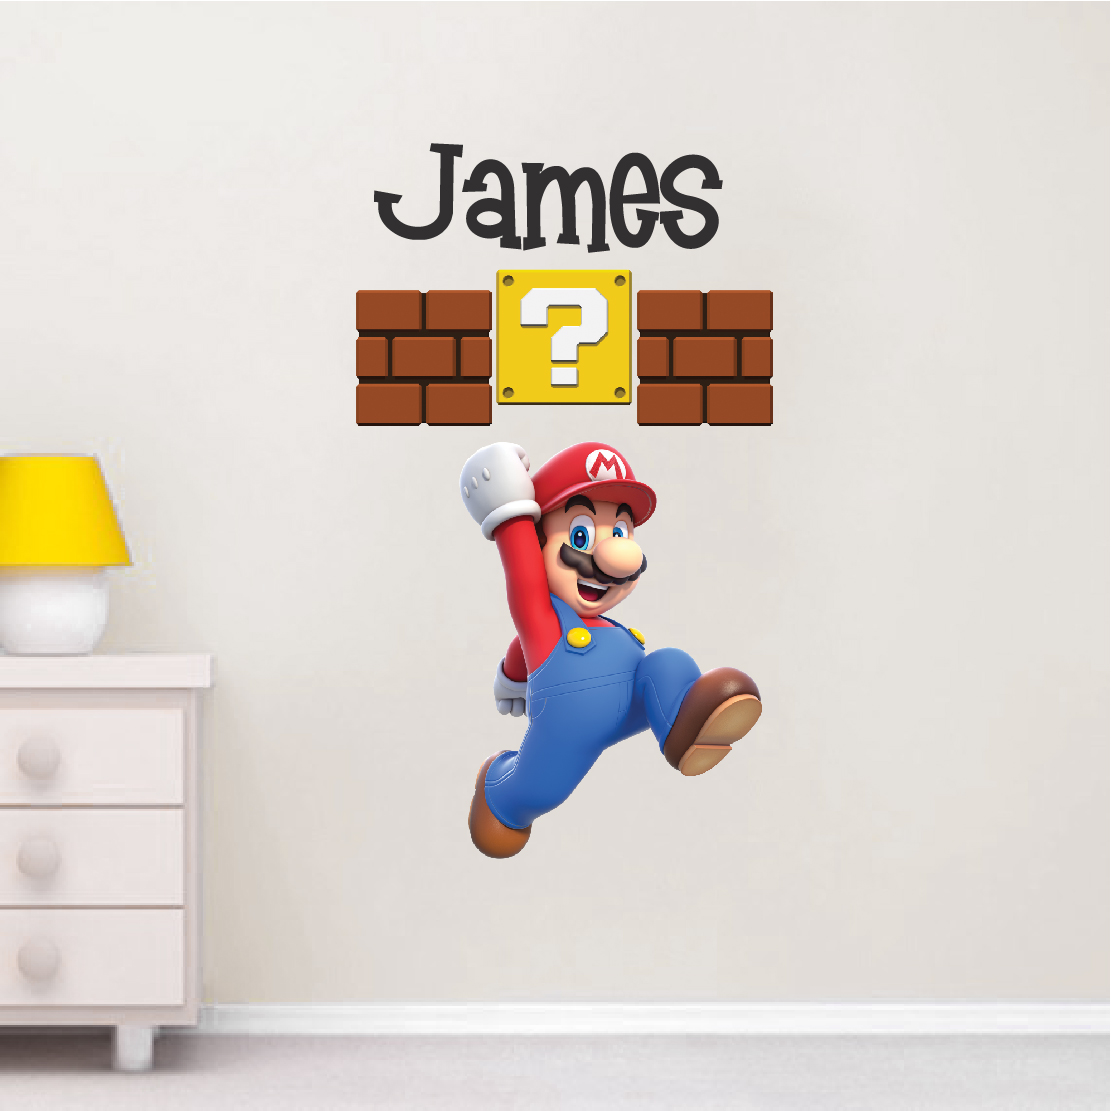 Super Mario Wall Sticker Mario Personalized Name Decal Super Mario Wall Decal